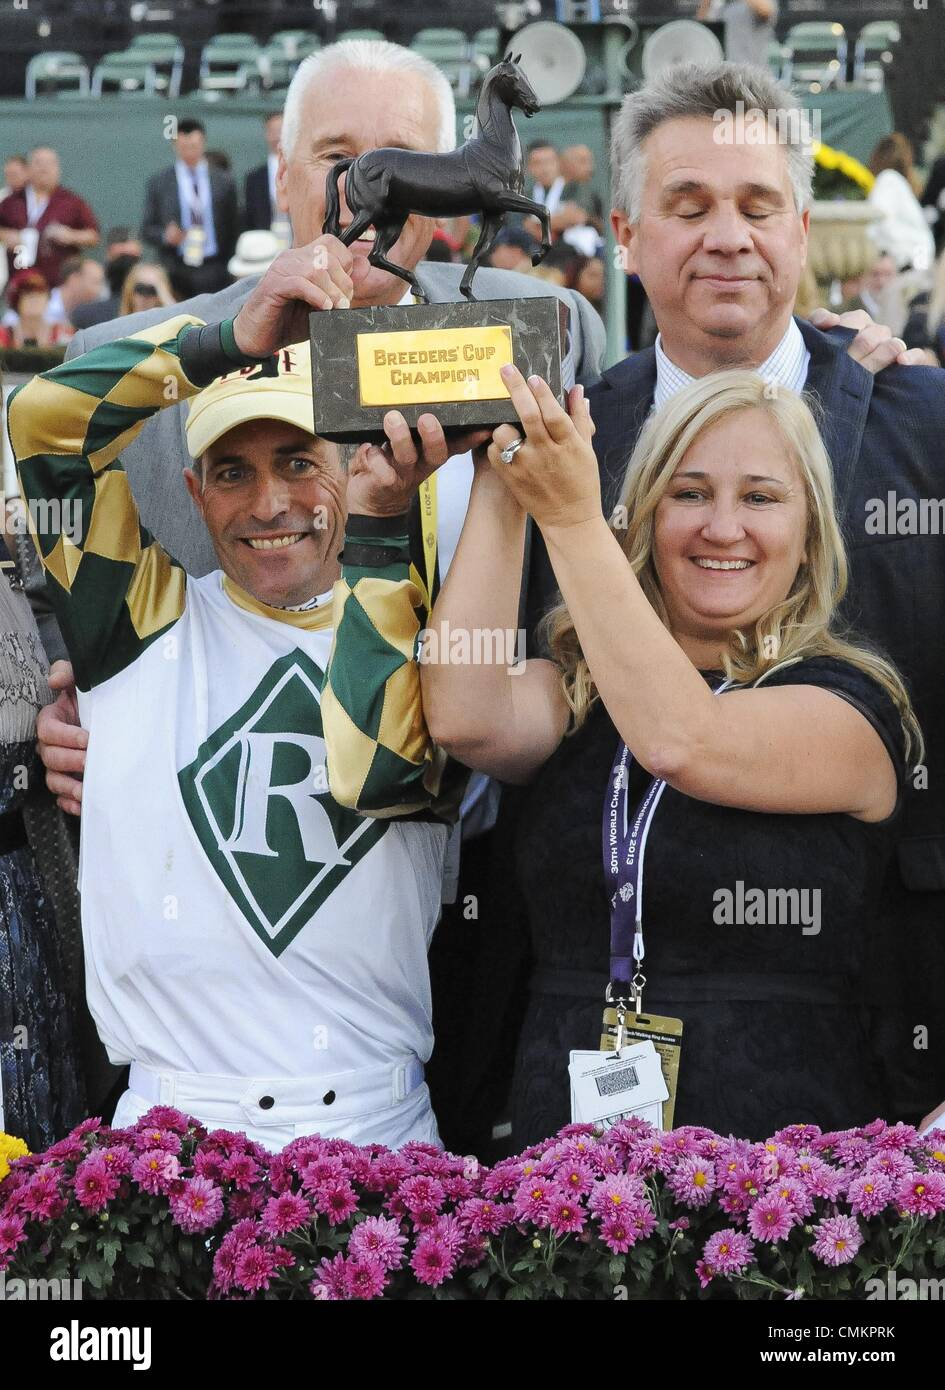 Arcadia, California, USA. 2nd Nov, 2013. Mucho Macho Man ridden by GARY STEVENS and trained by KATHY RITVO wins - Stock Image